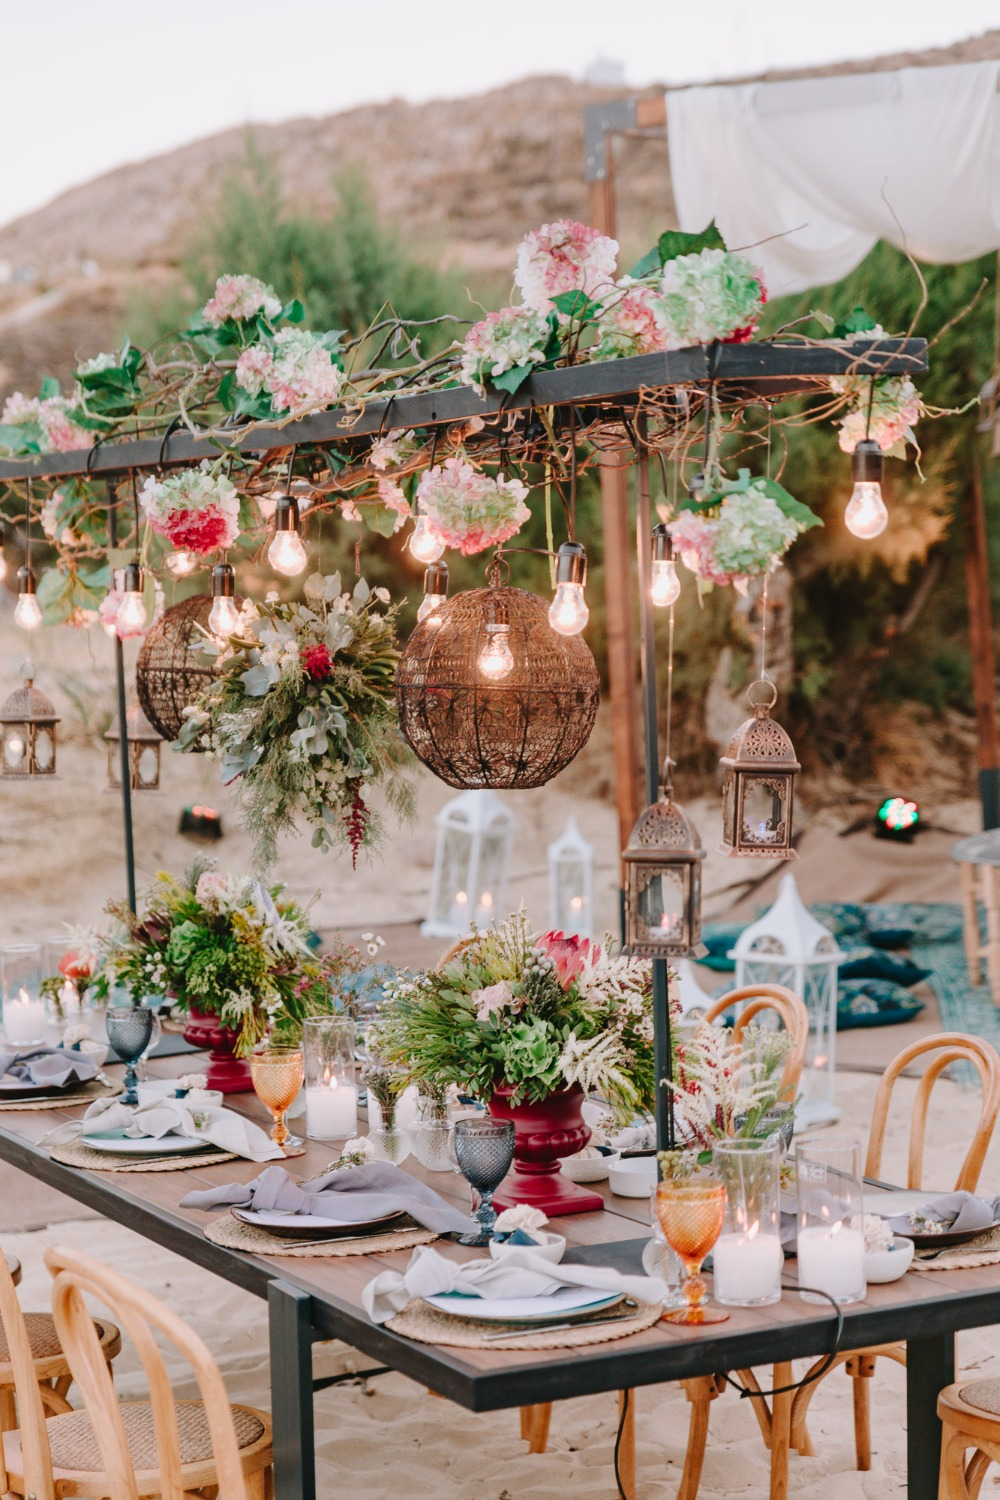 Wedding table decor idea with hanging lights